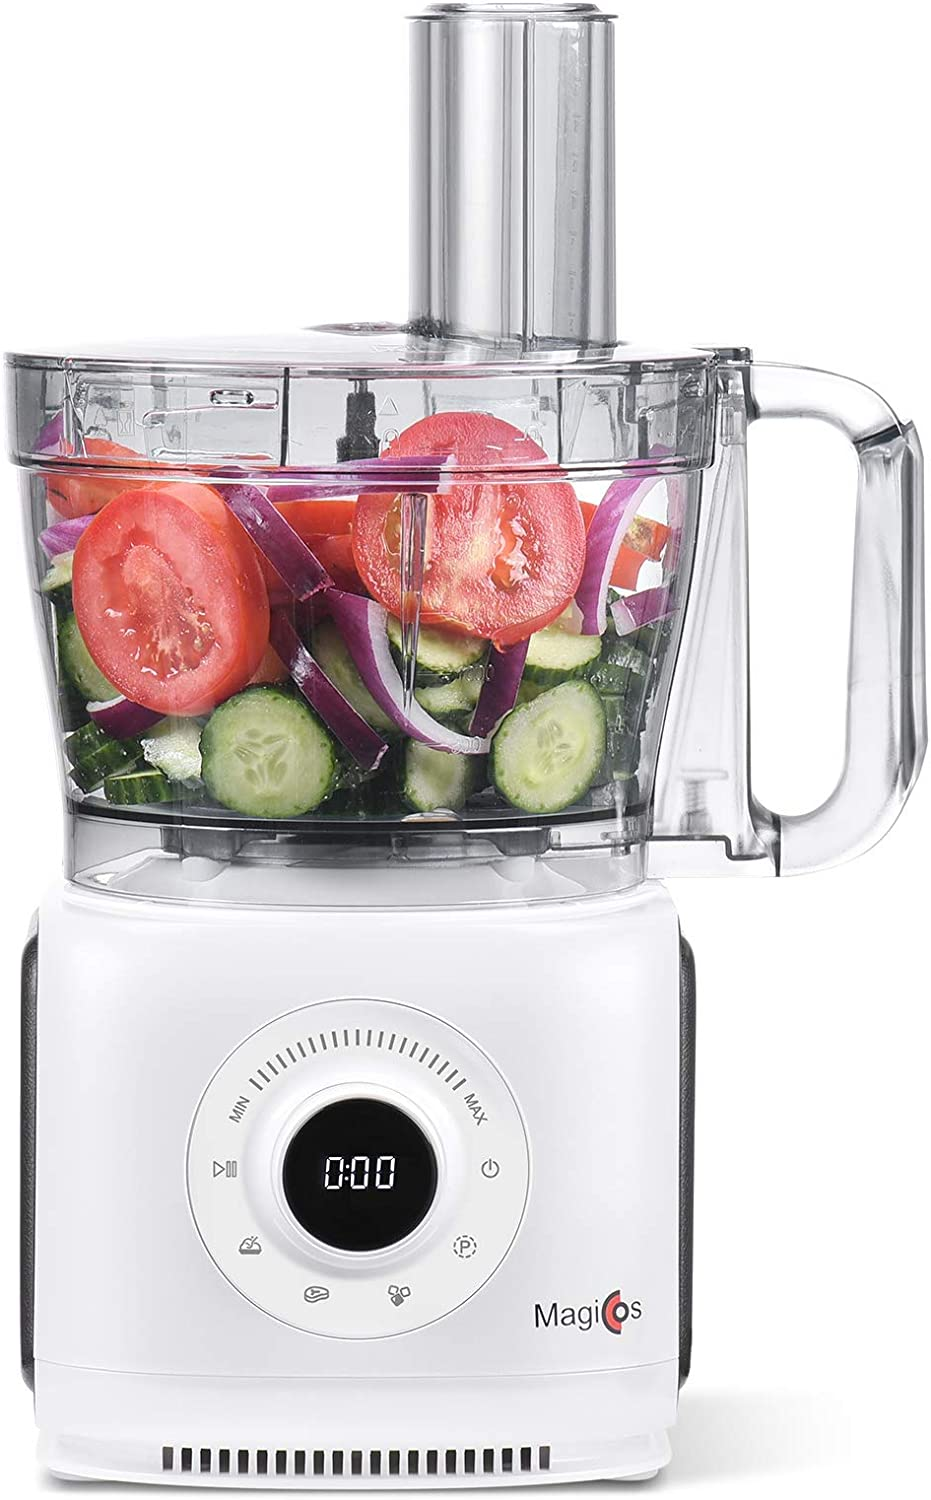 14 Cup Electric Food Processor, MAGICCOS 1000Watt Digital Food Chopper, With 7 Chopping Kneading Shredding Slicing and Mashing Blades,7 Variable Speeds Plus Pulse, Timer, Pear White Coating (Renewed)